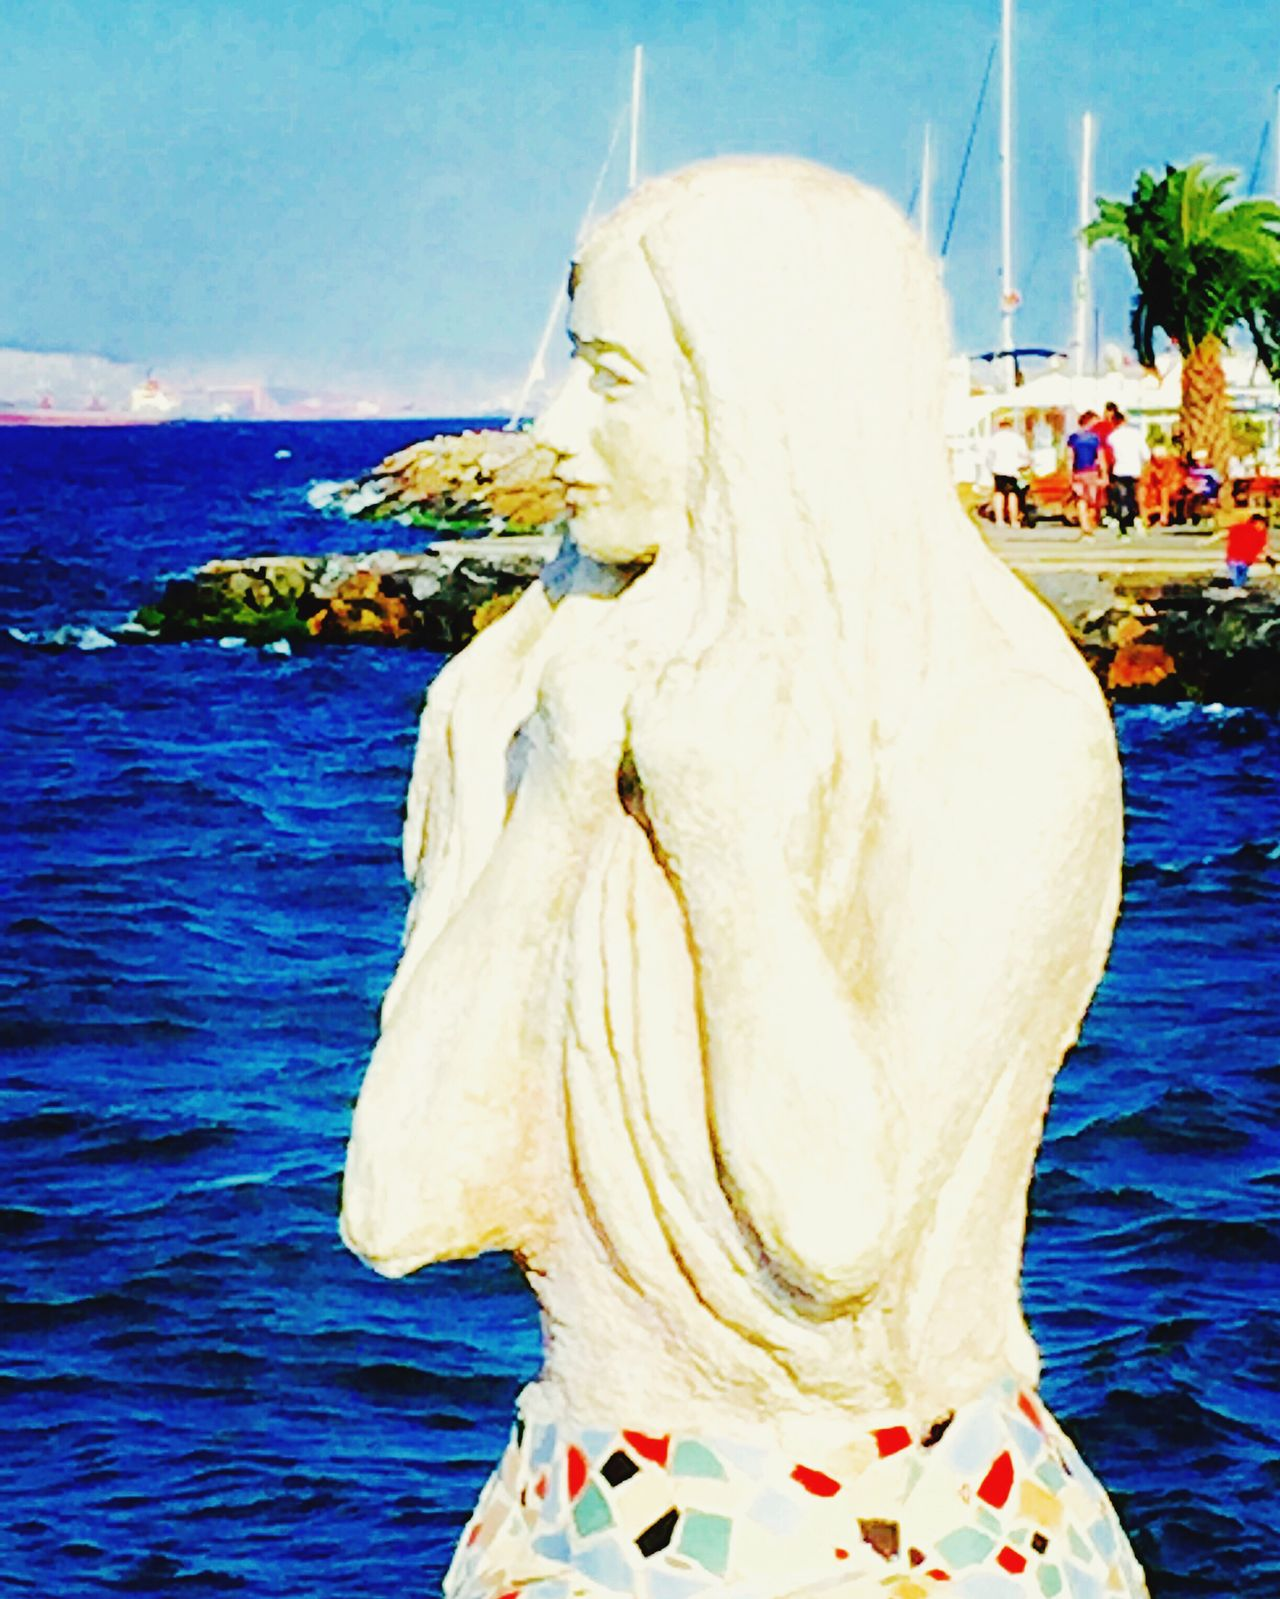 Mermaid Statue Art Seaview Sea Princeislands Prinkipo Mobile Photography Mobilephotography IPhoneography Showcase July Island Life